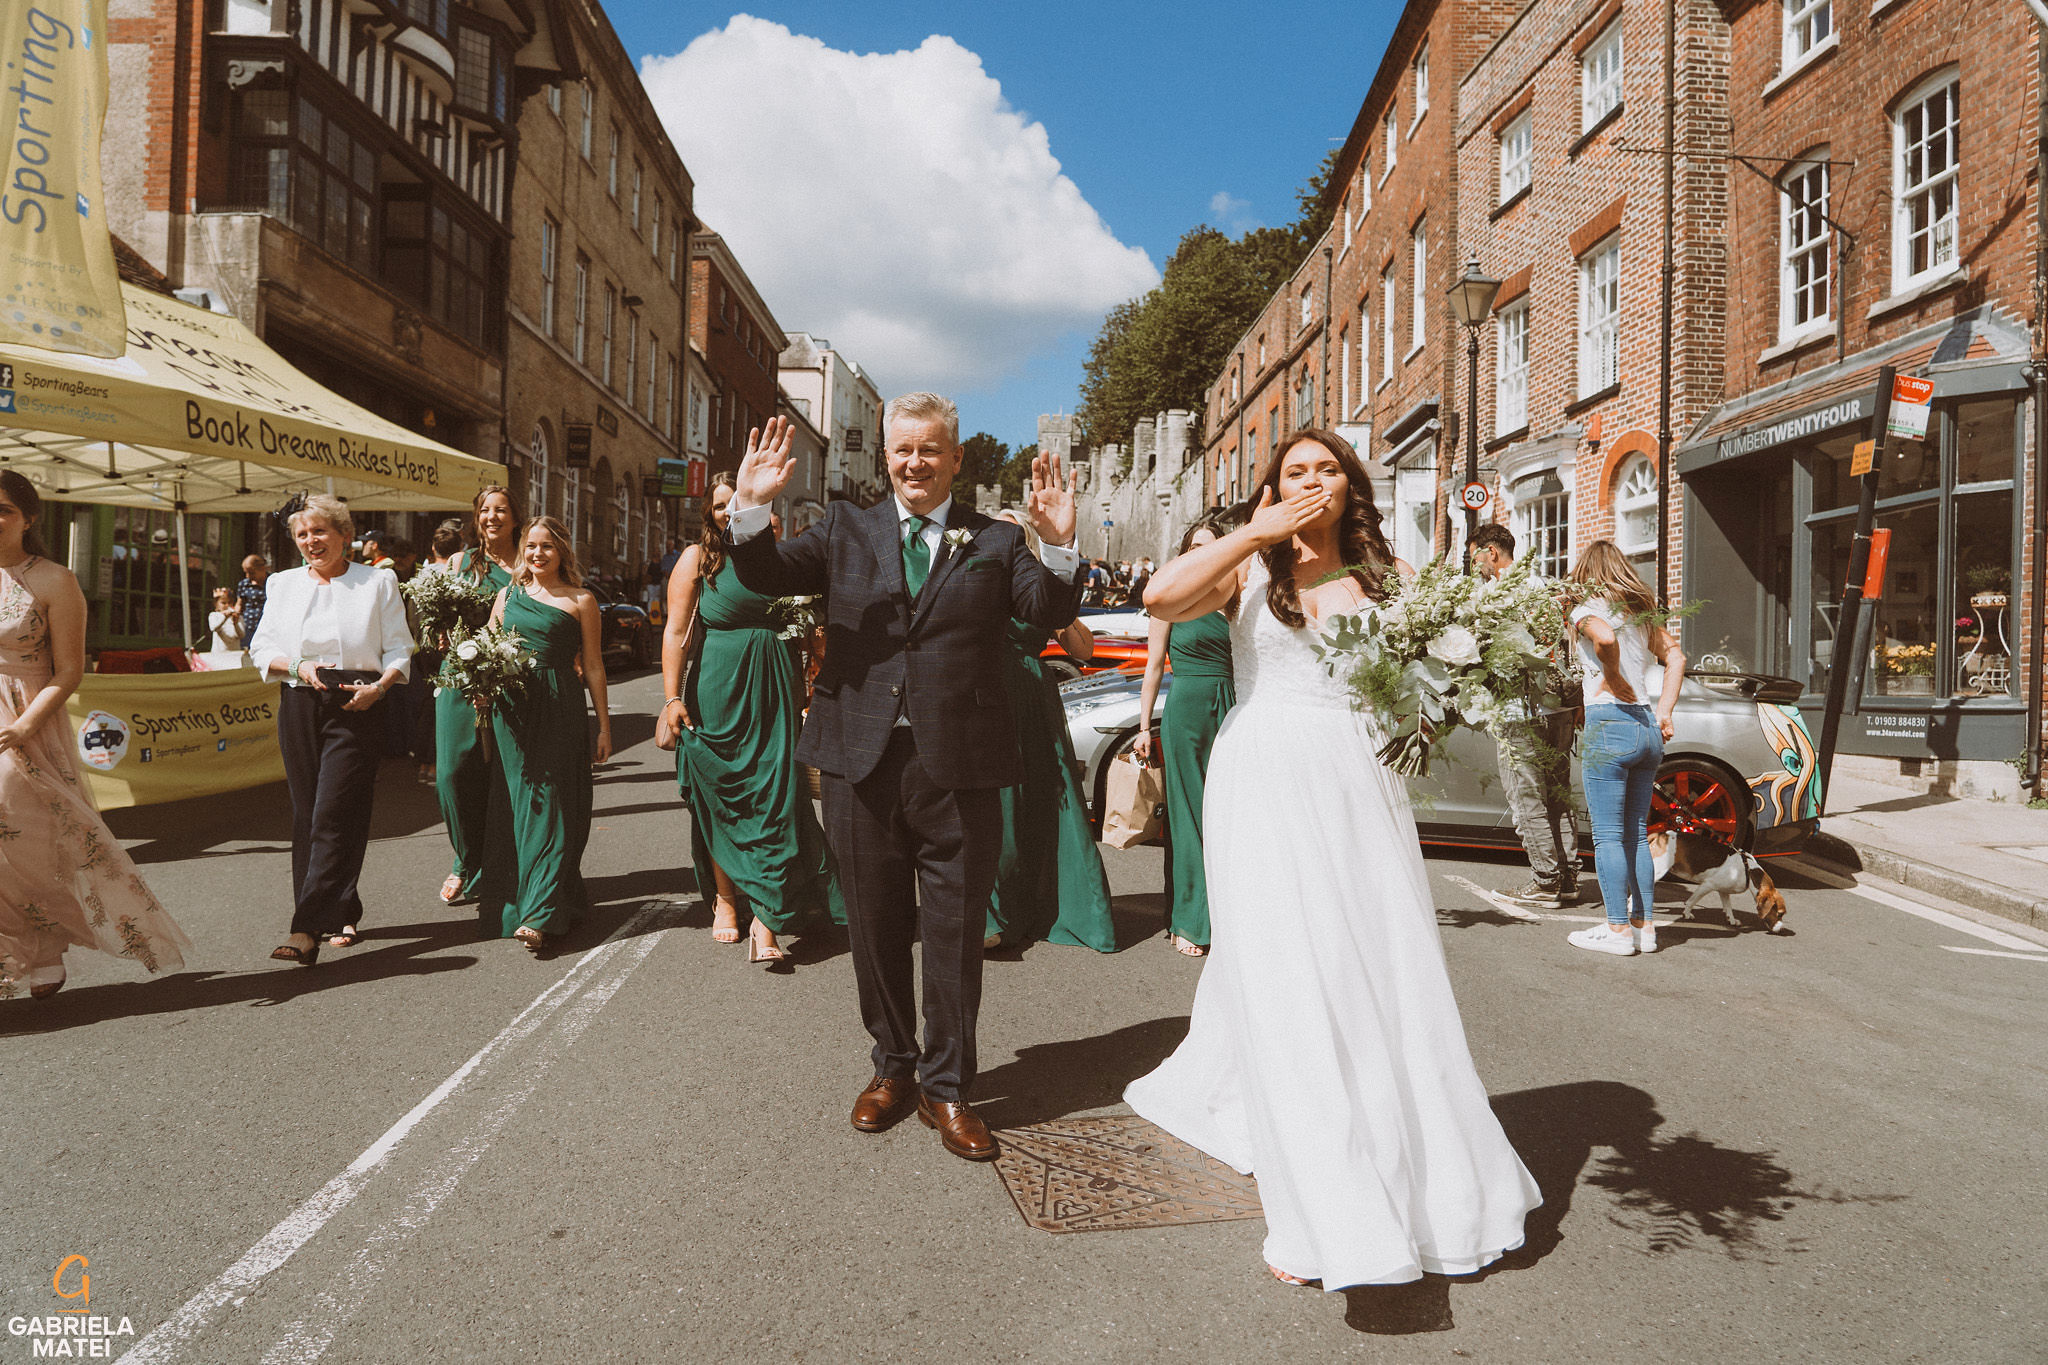 Bride and father of the bride waiving at people whislt they walk on High Street in Arundel on wedding day